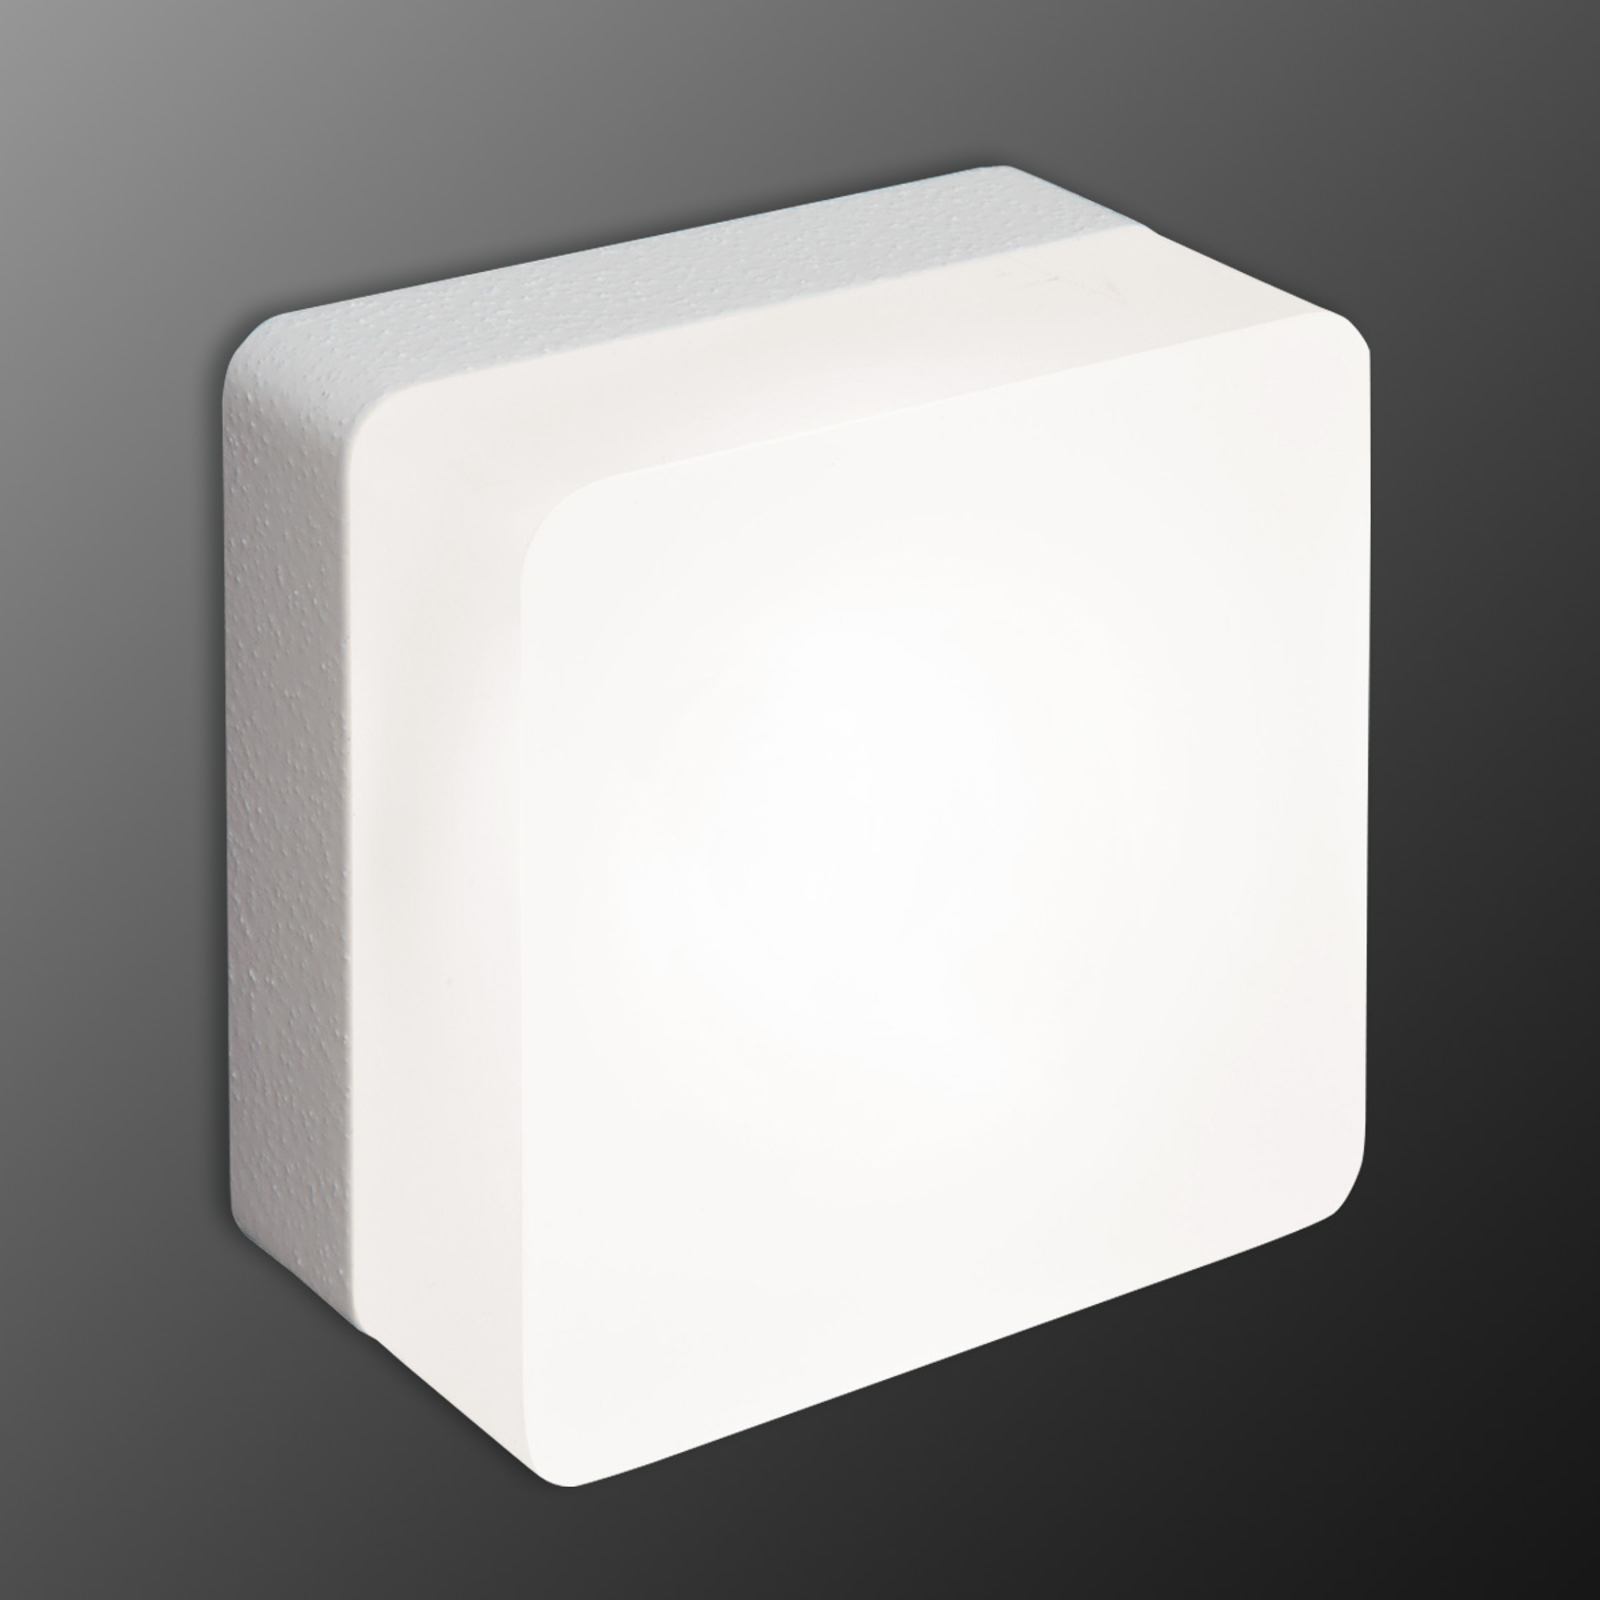 Concrete grey painted LED wall light Muffin_3039192_1